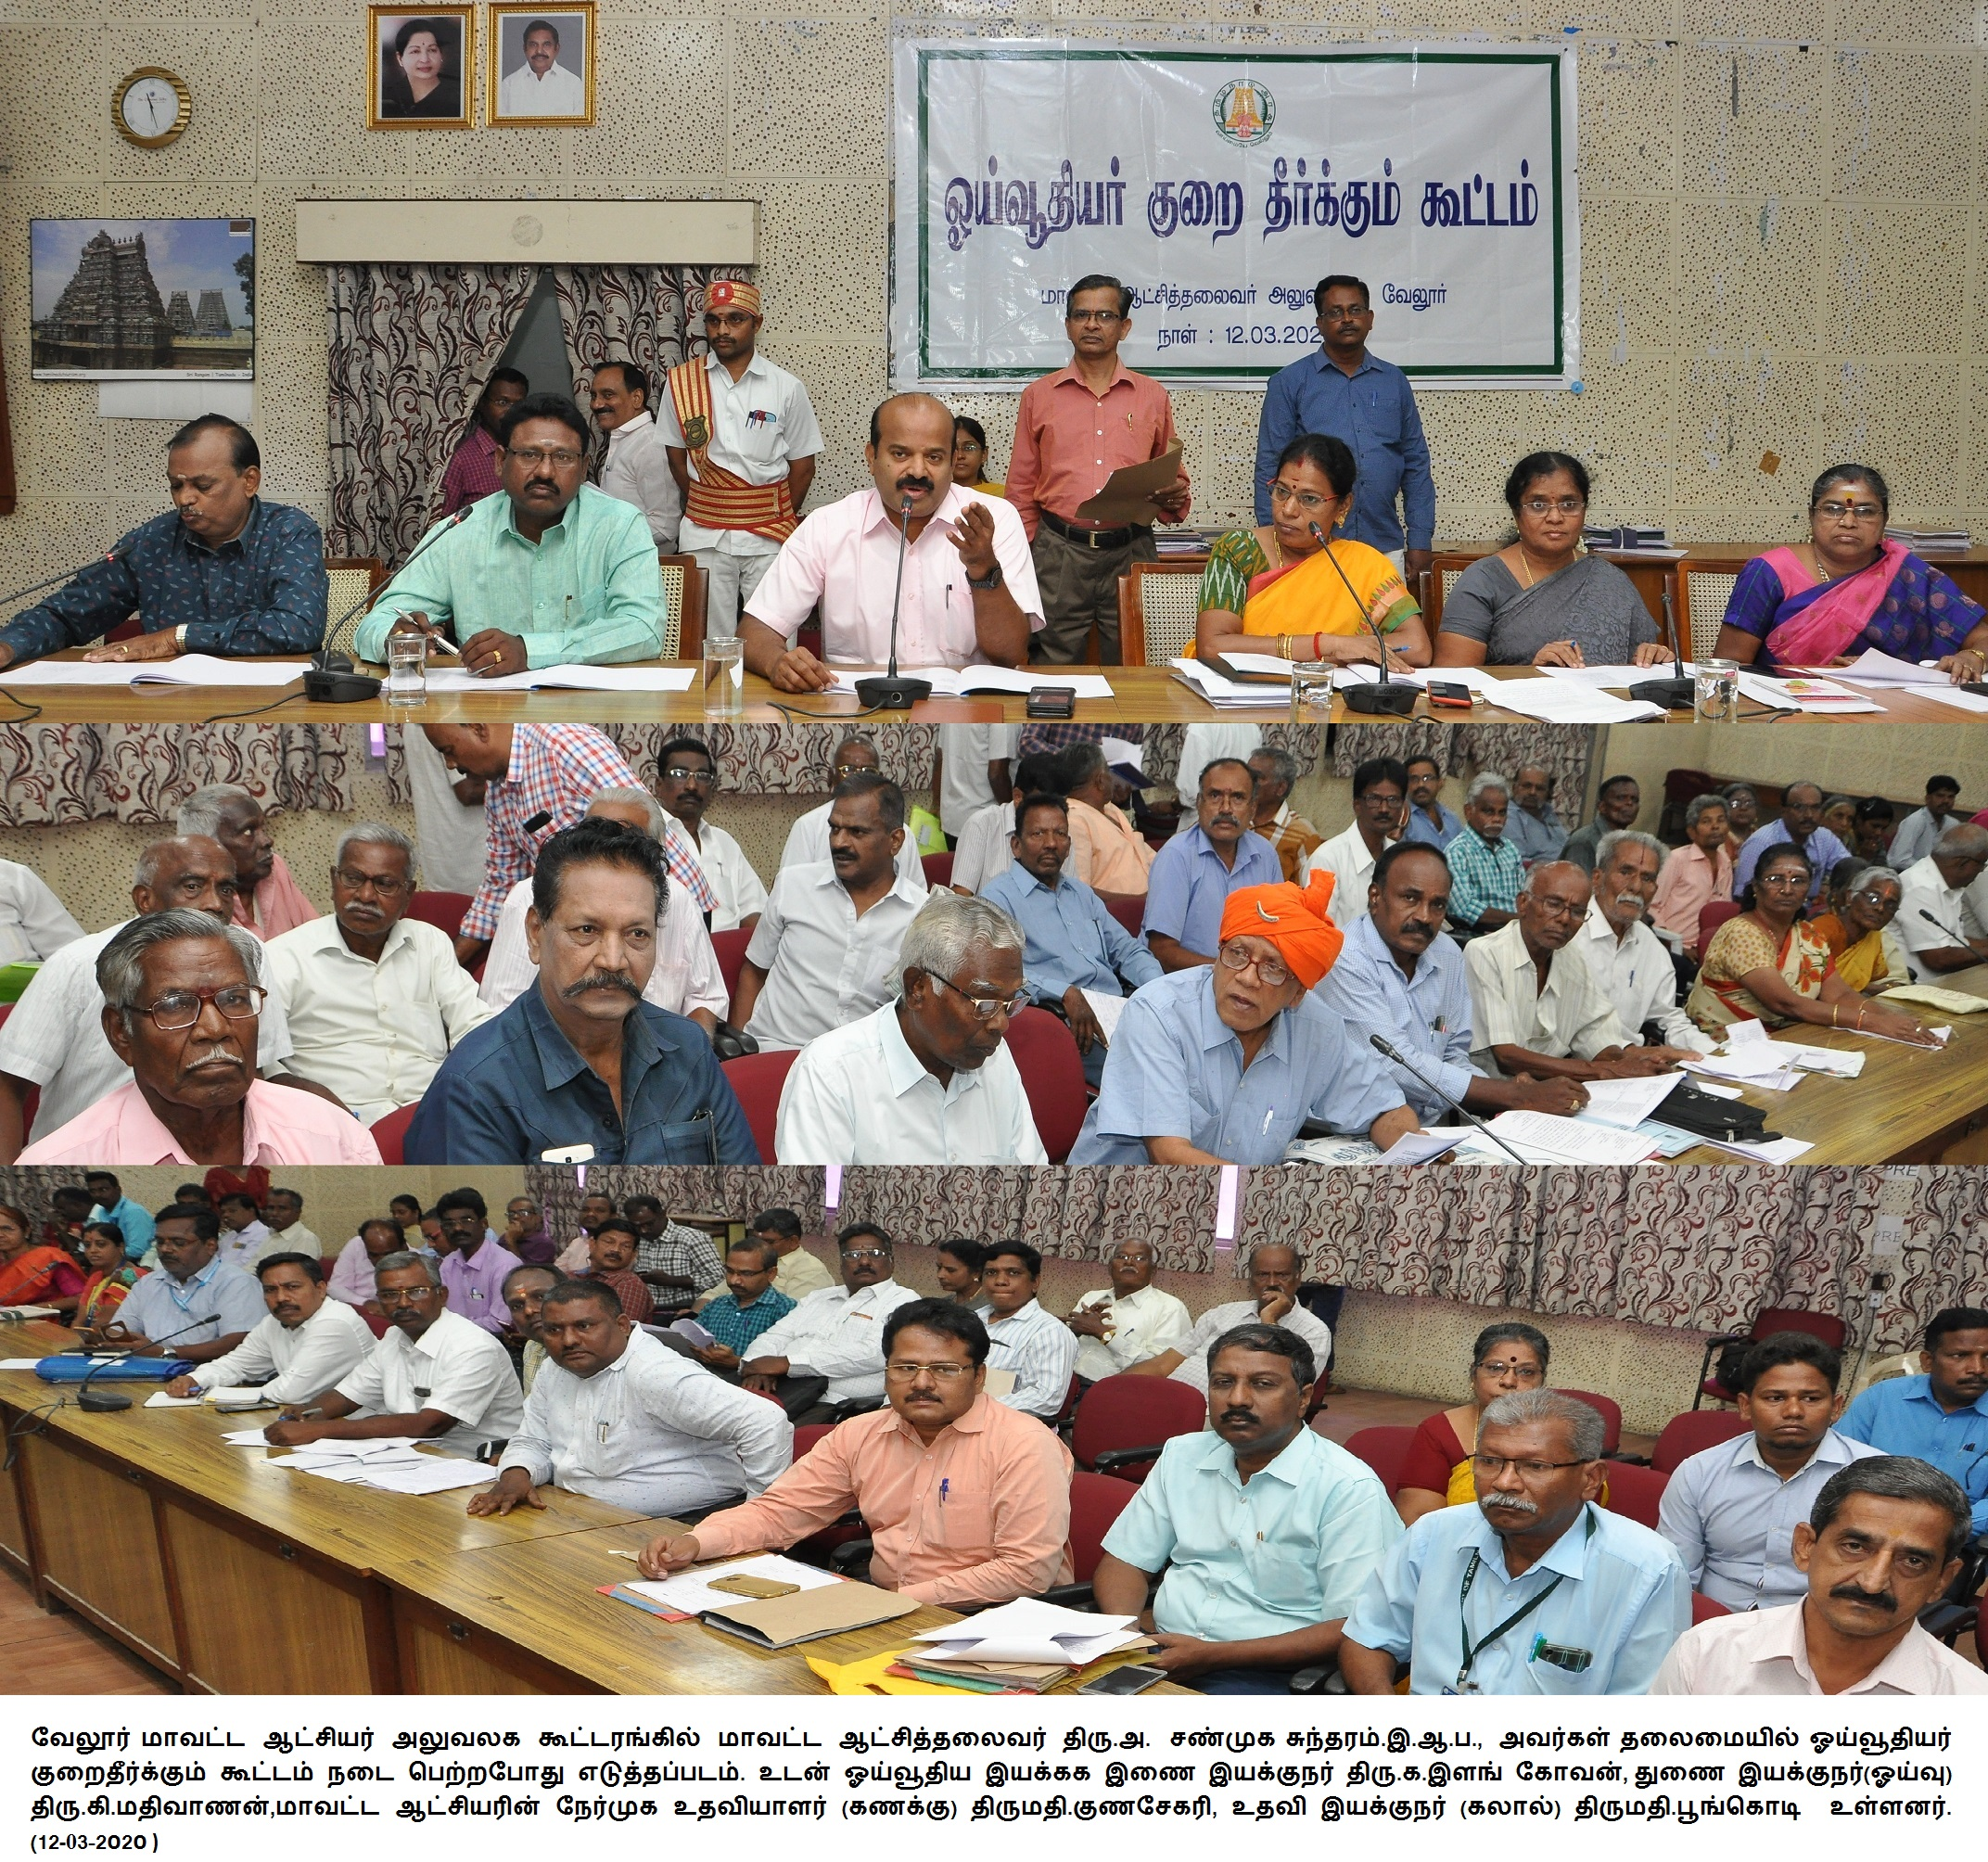 Pensioners Grievances Meeting 12-003-2020